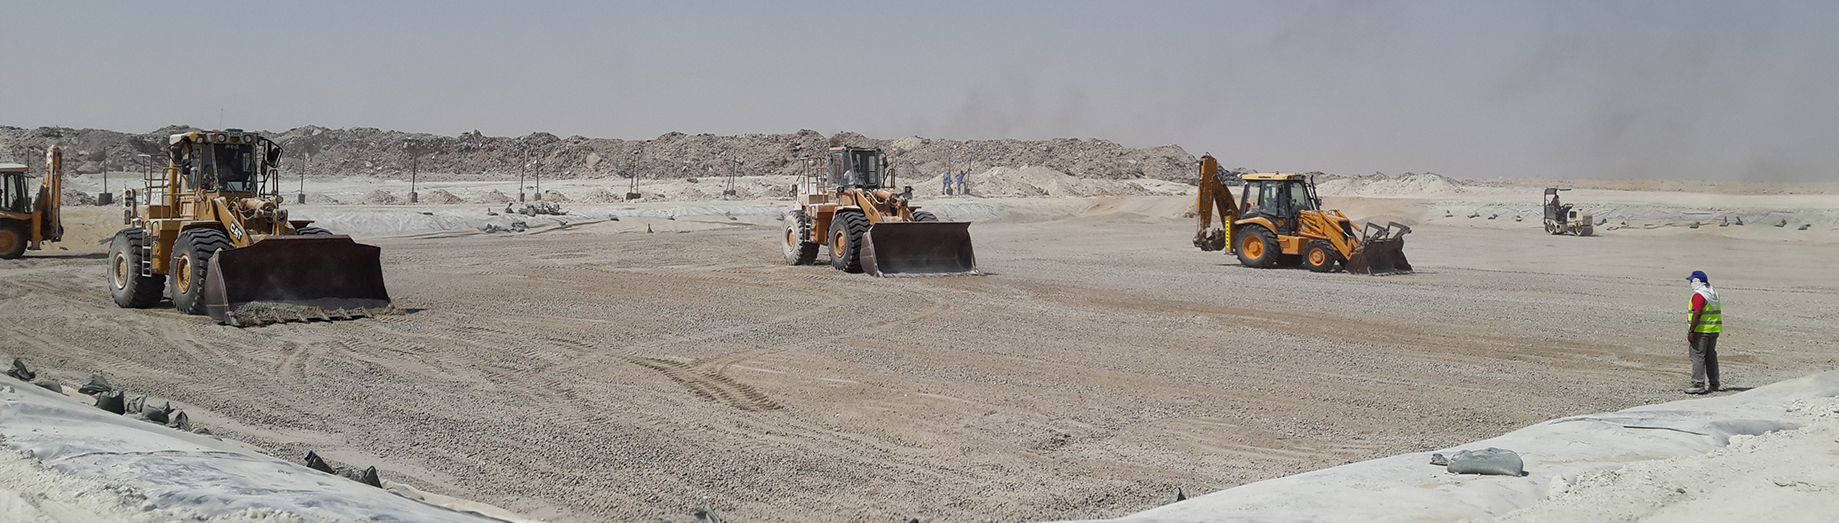 Abu Dhabi Landfill Liquid and Solid Hazardous Waste Cells